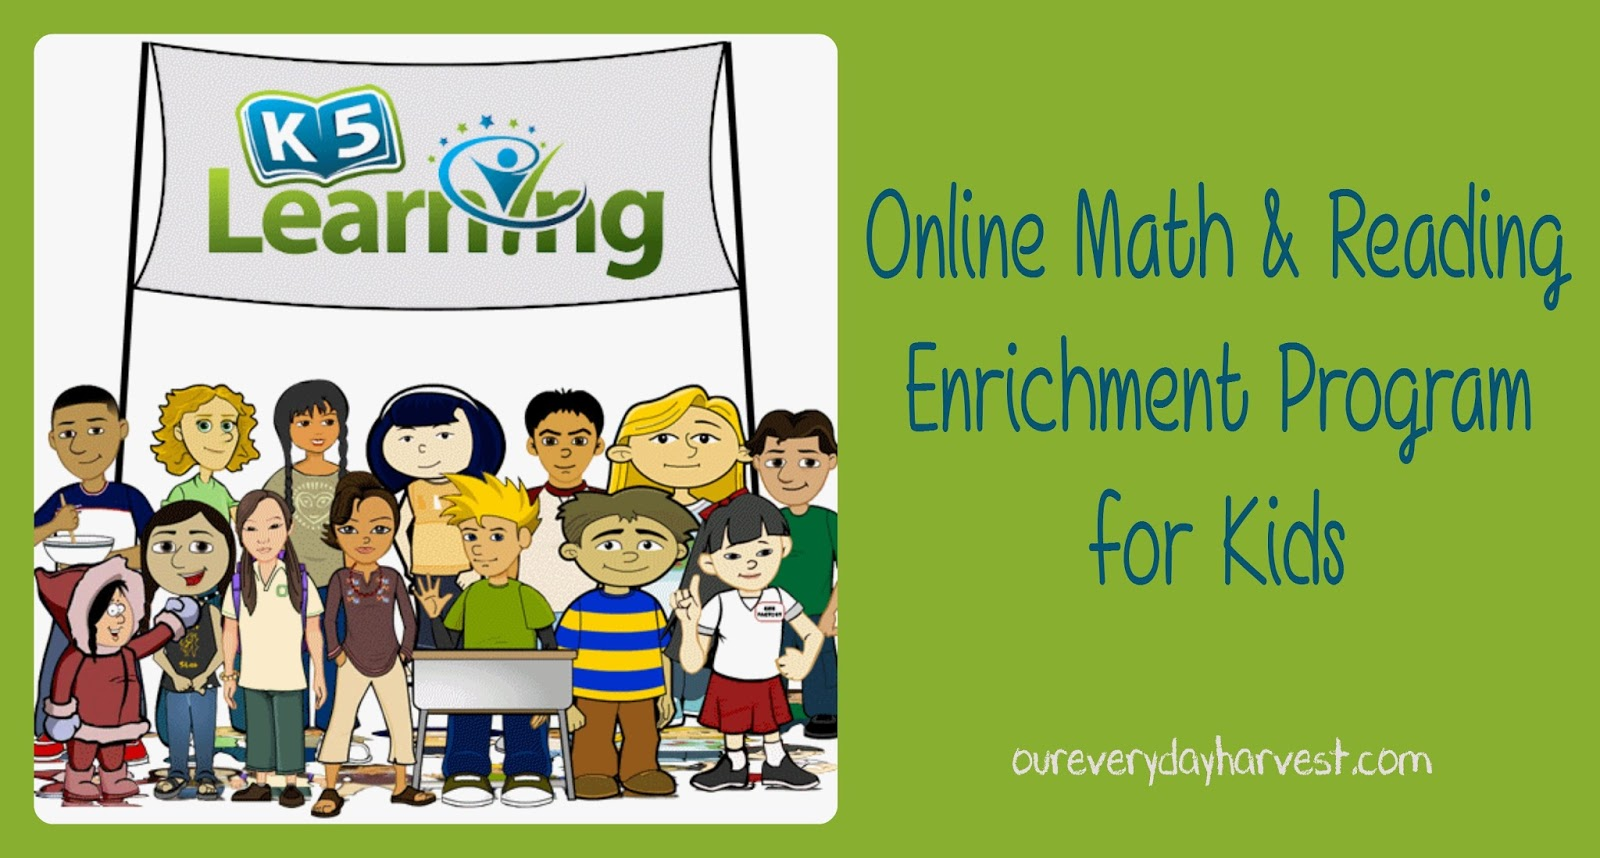 hight resolution of Online Math and Reading Enrichment Program for Kids: K5 Learning Review    Our Everyday Harvest